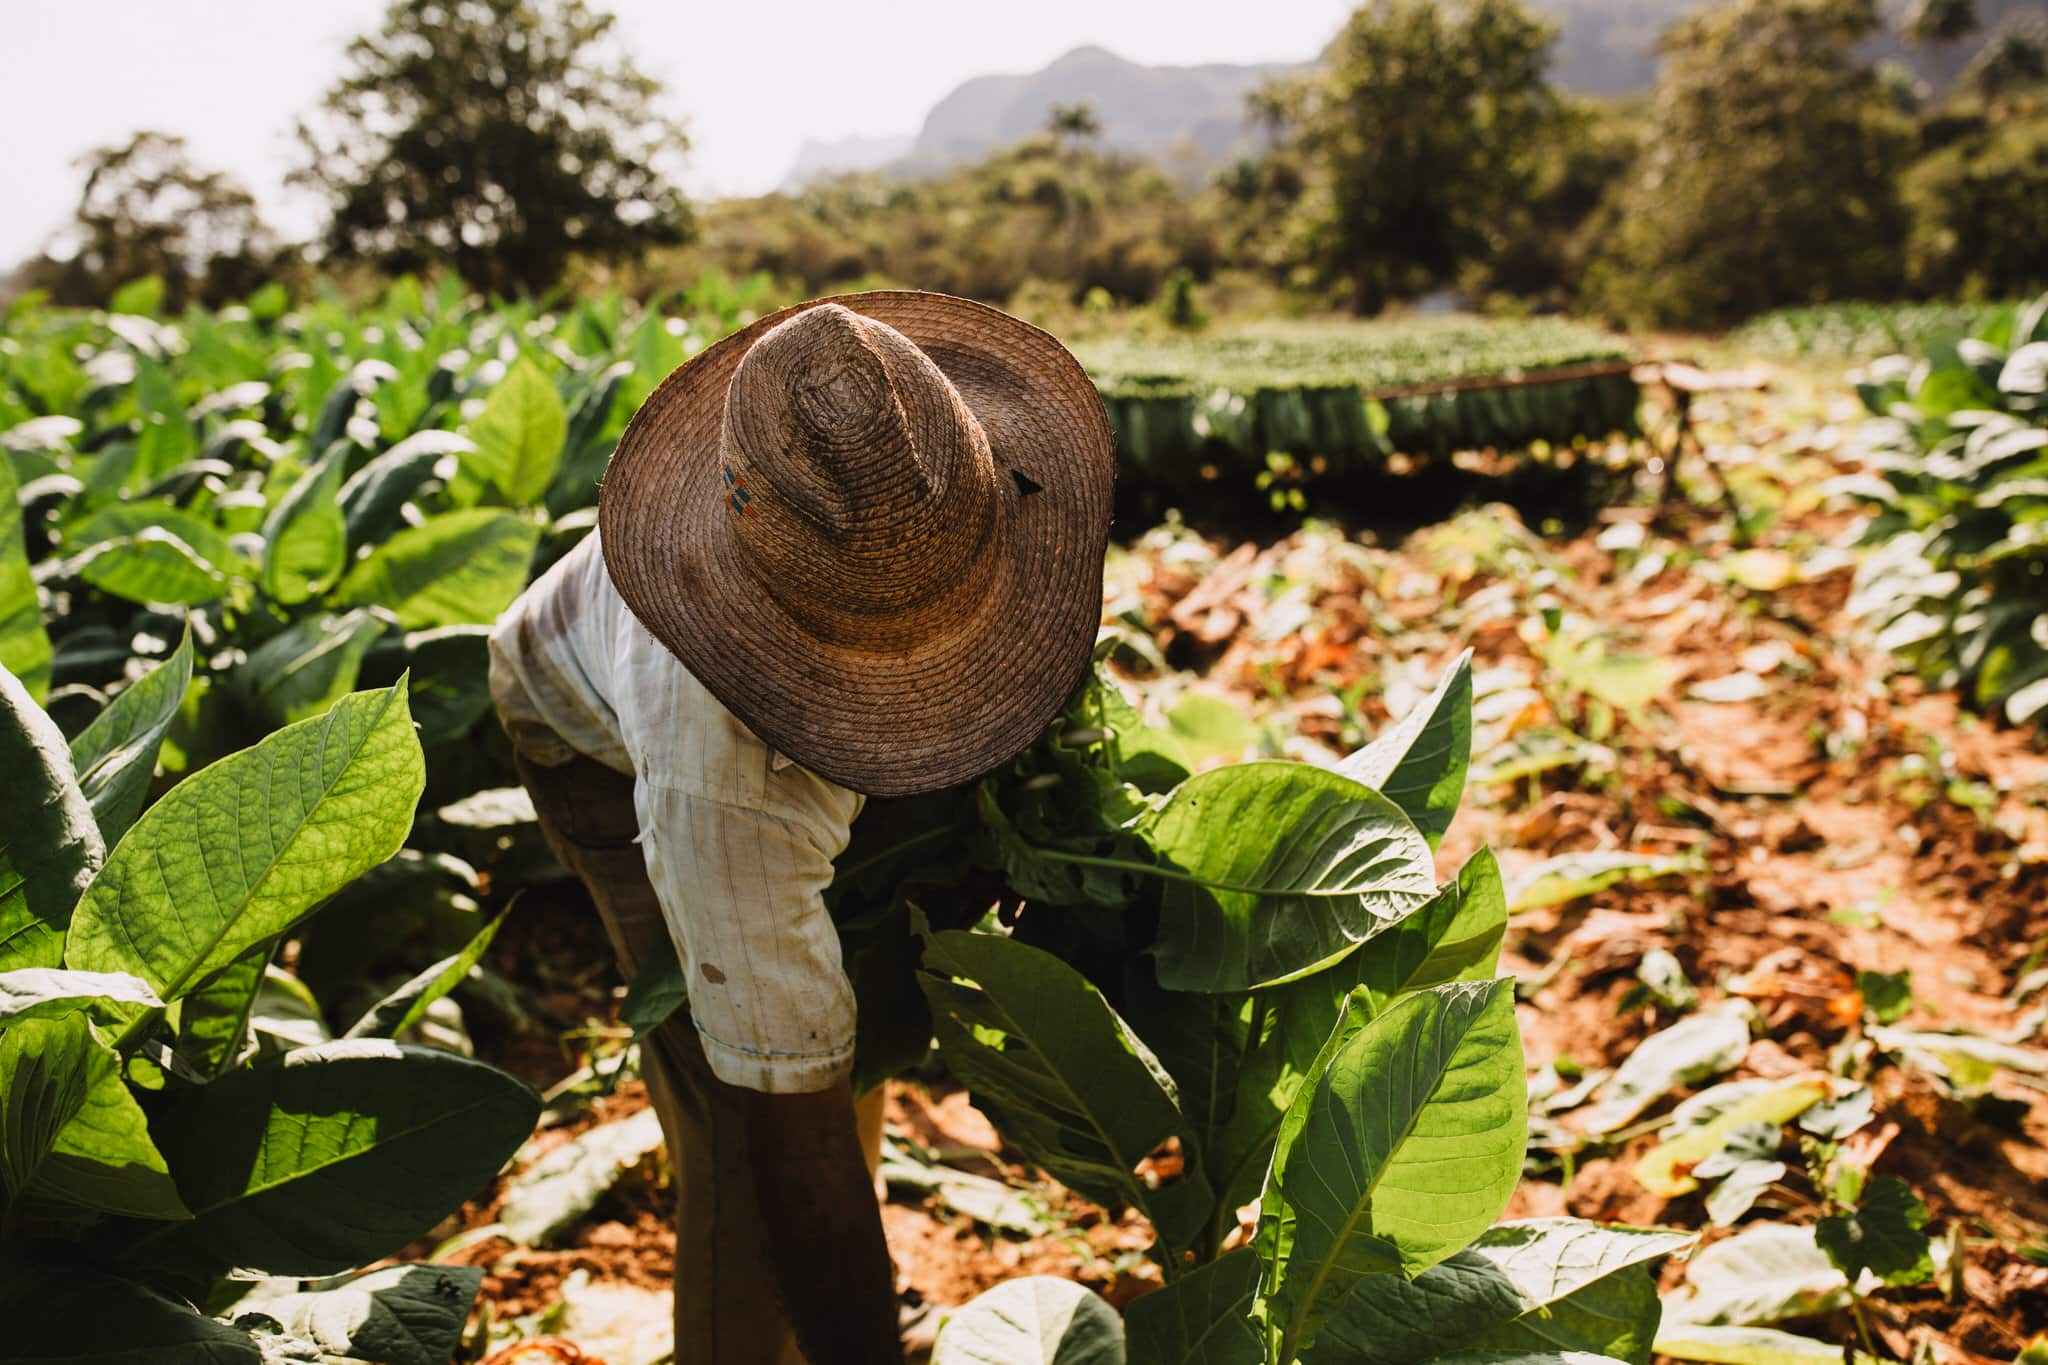 A tobacco farmer harvests fresh tobacco on cigar farm in Vinales, Cuba. Wedding and travel photographer Brent Calis.